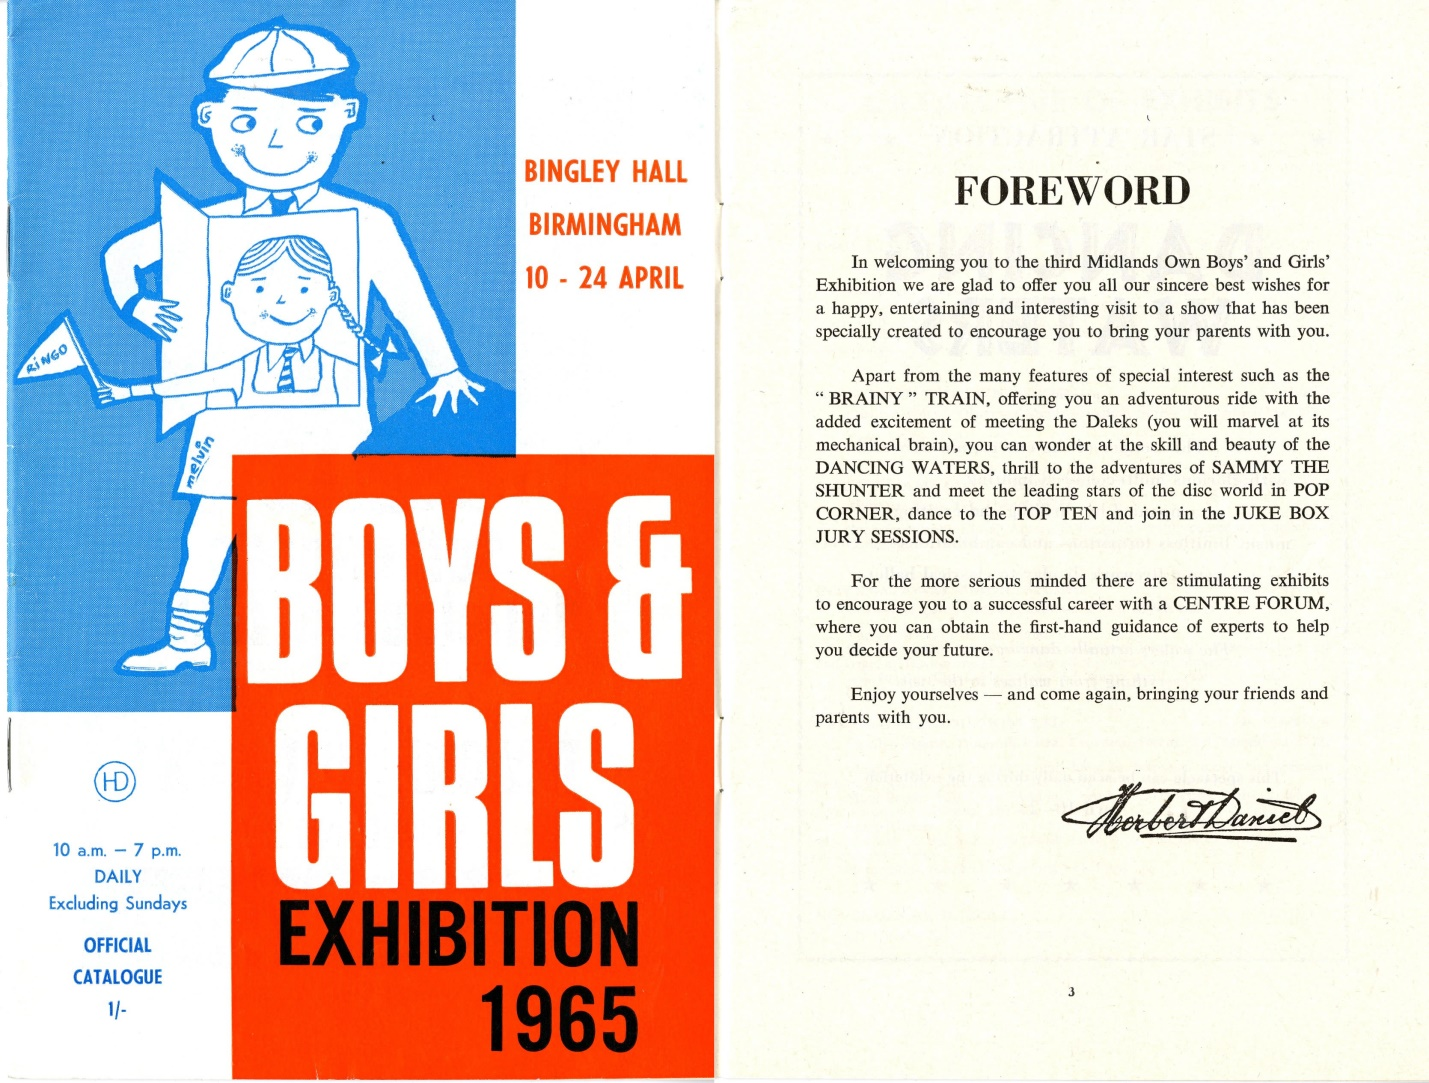 Boys and Girls Exhibition, Bingley Hall, Birmingham, 10-24 April 1965; appearance of the Daleks is mentioned in the Foreword